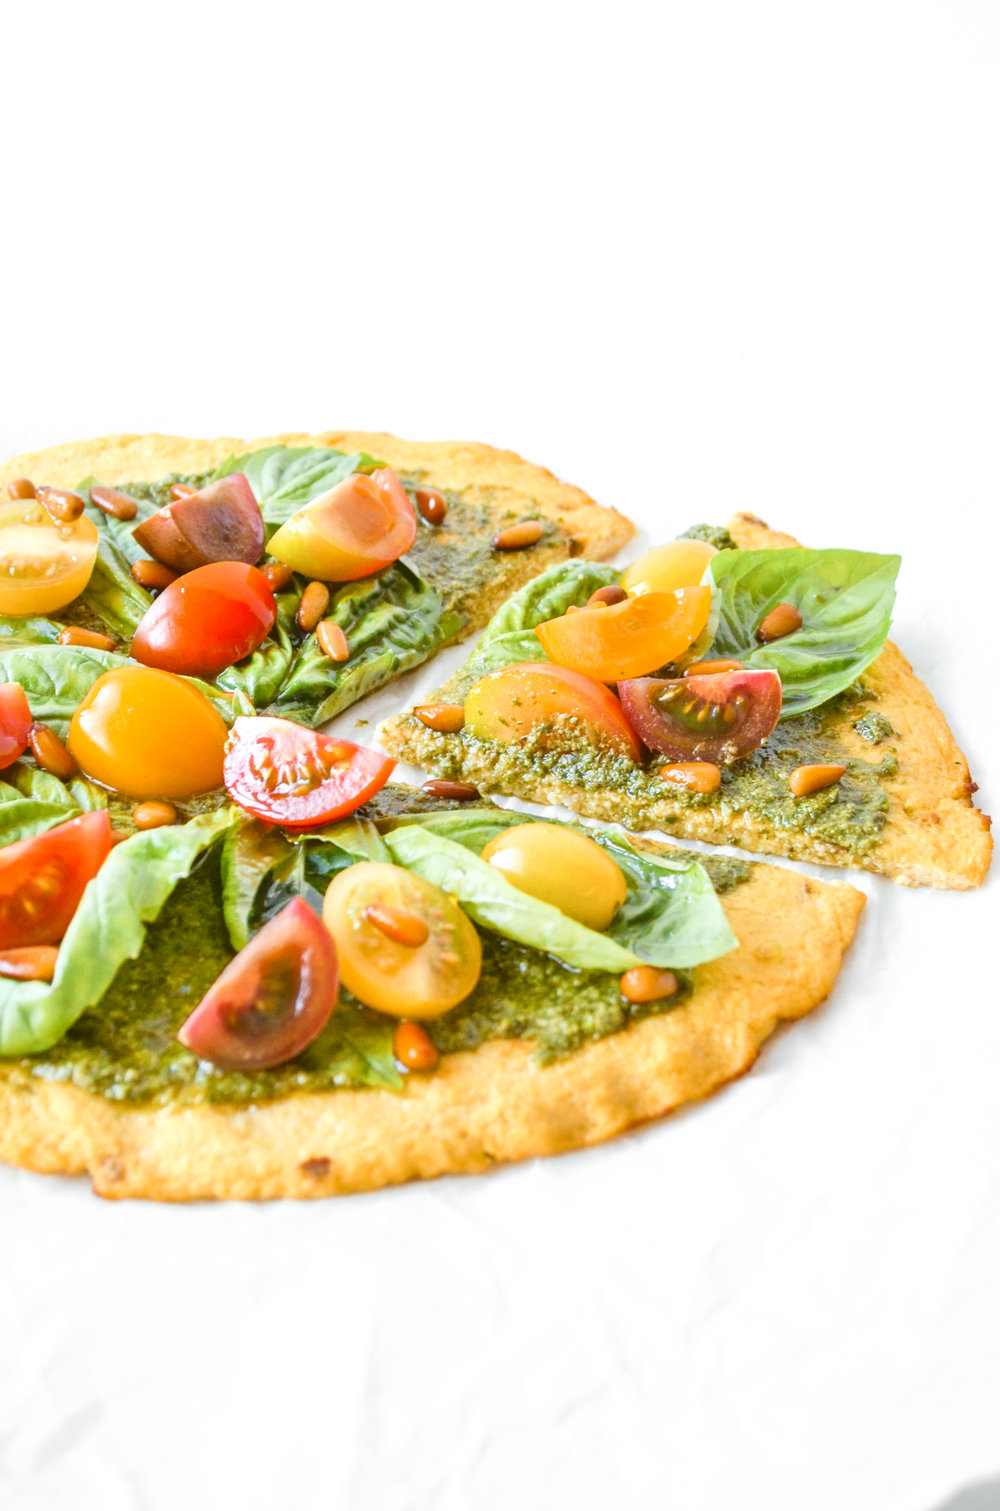 paleo pesto pizza with cauliflower crust // #ShiraRD #paleo #refinedsugarfree #SnacksbyShira